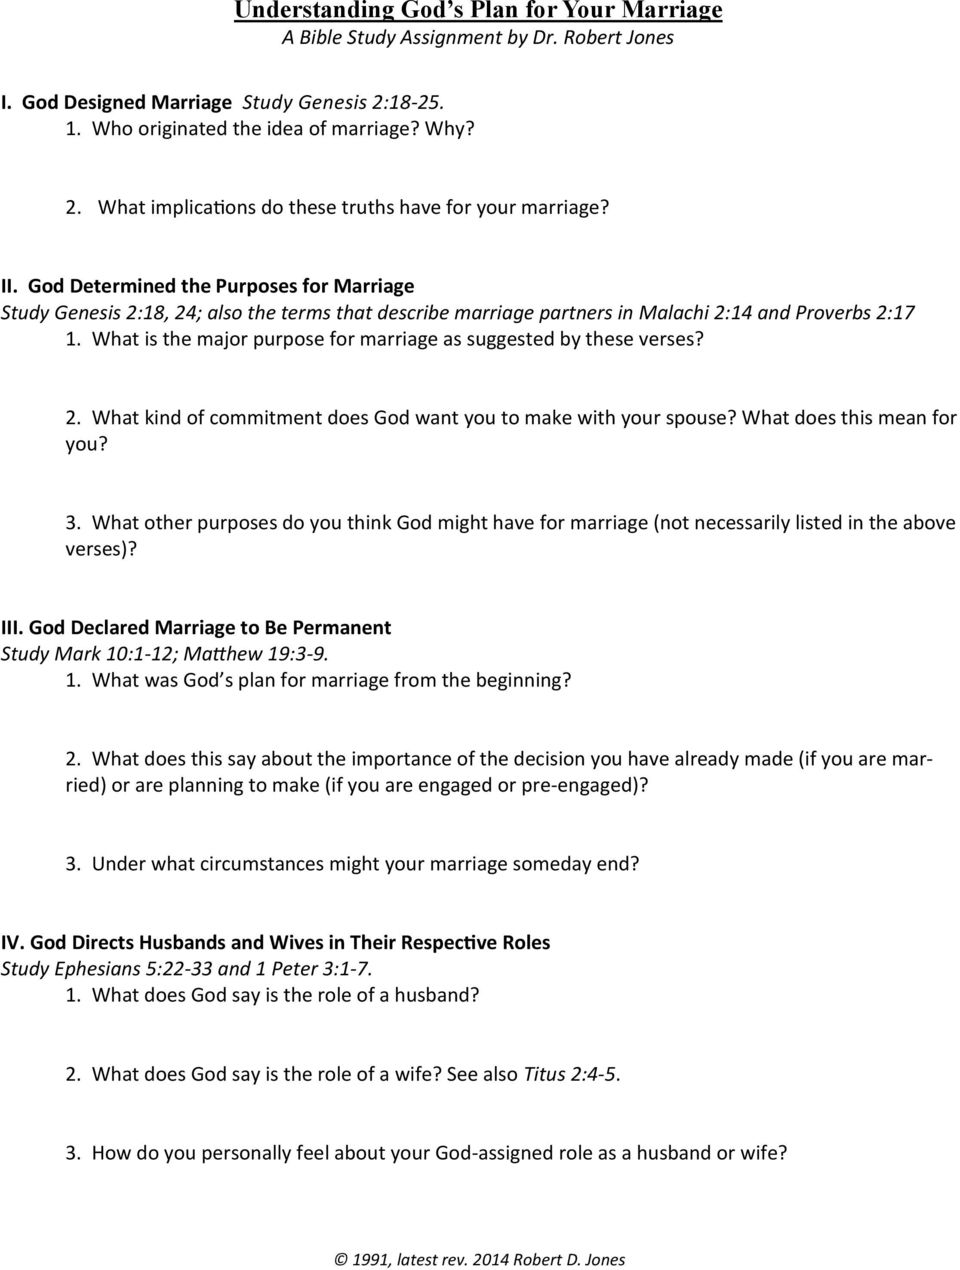 BIBLICAL & THEOLOGICAL FOUNDATIONS OF MARRIAGE - PDF